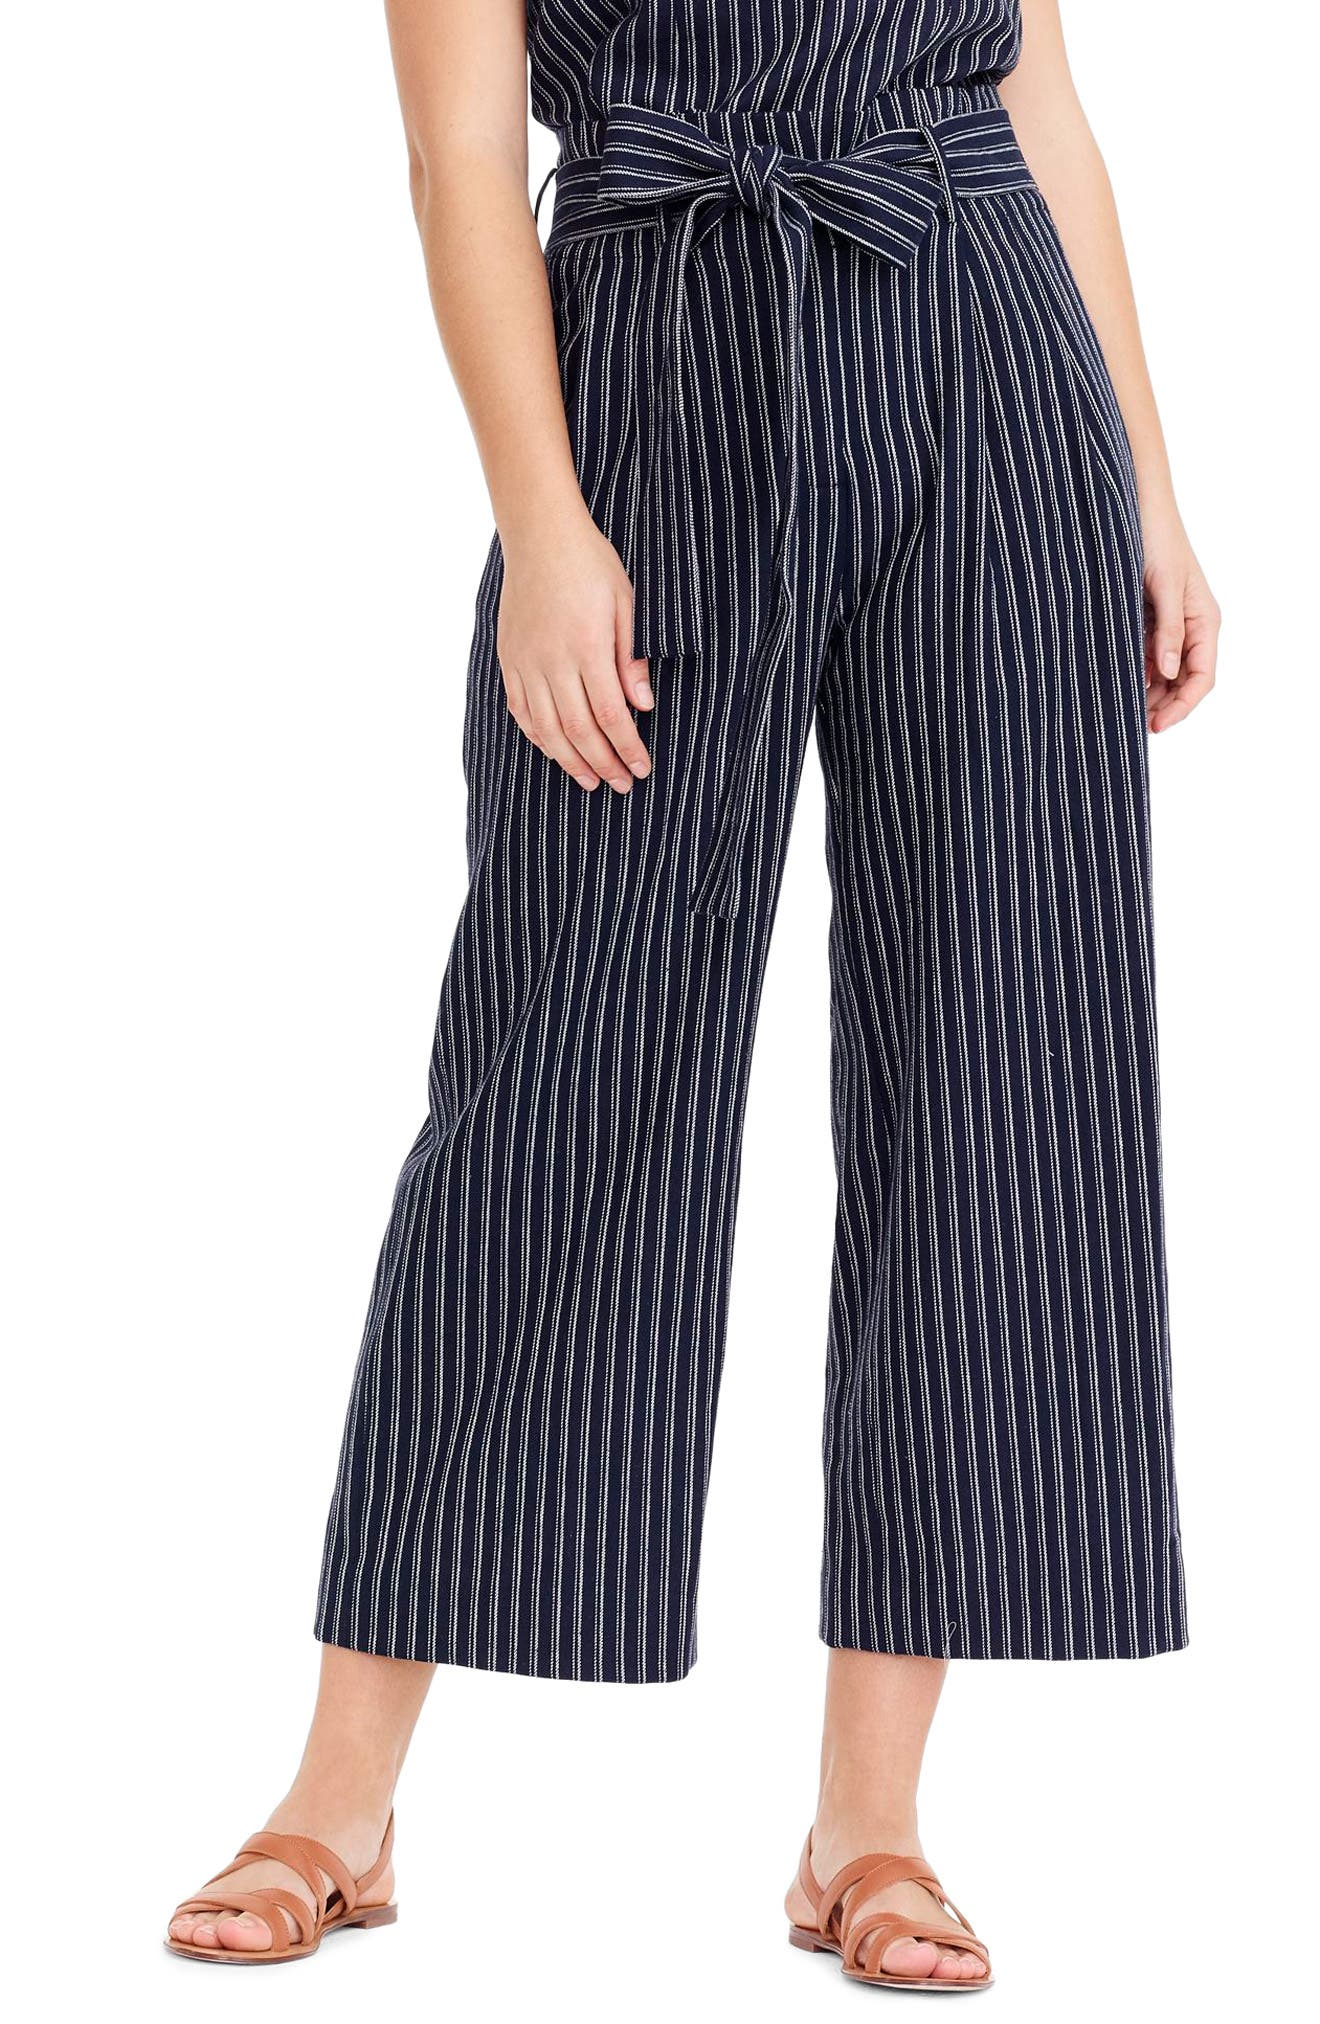 Point Sur Paperbag Pants,                         Main,                         color, Navy White Stripe